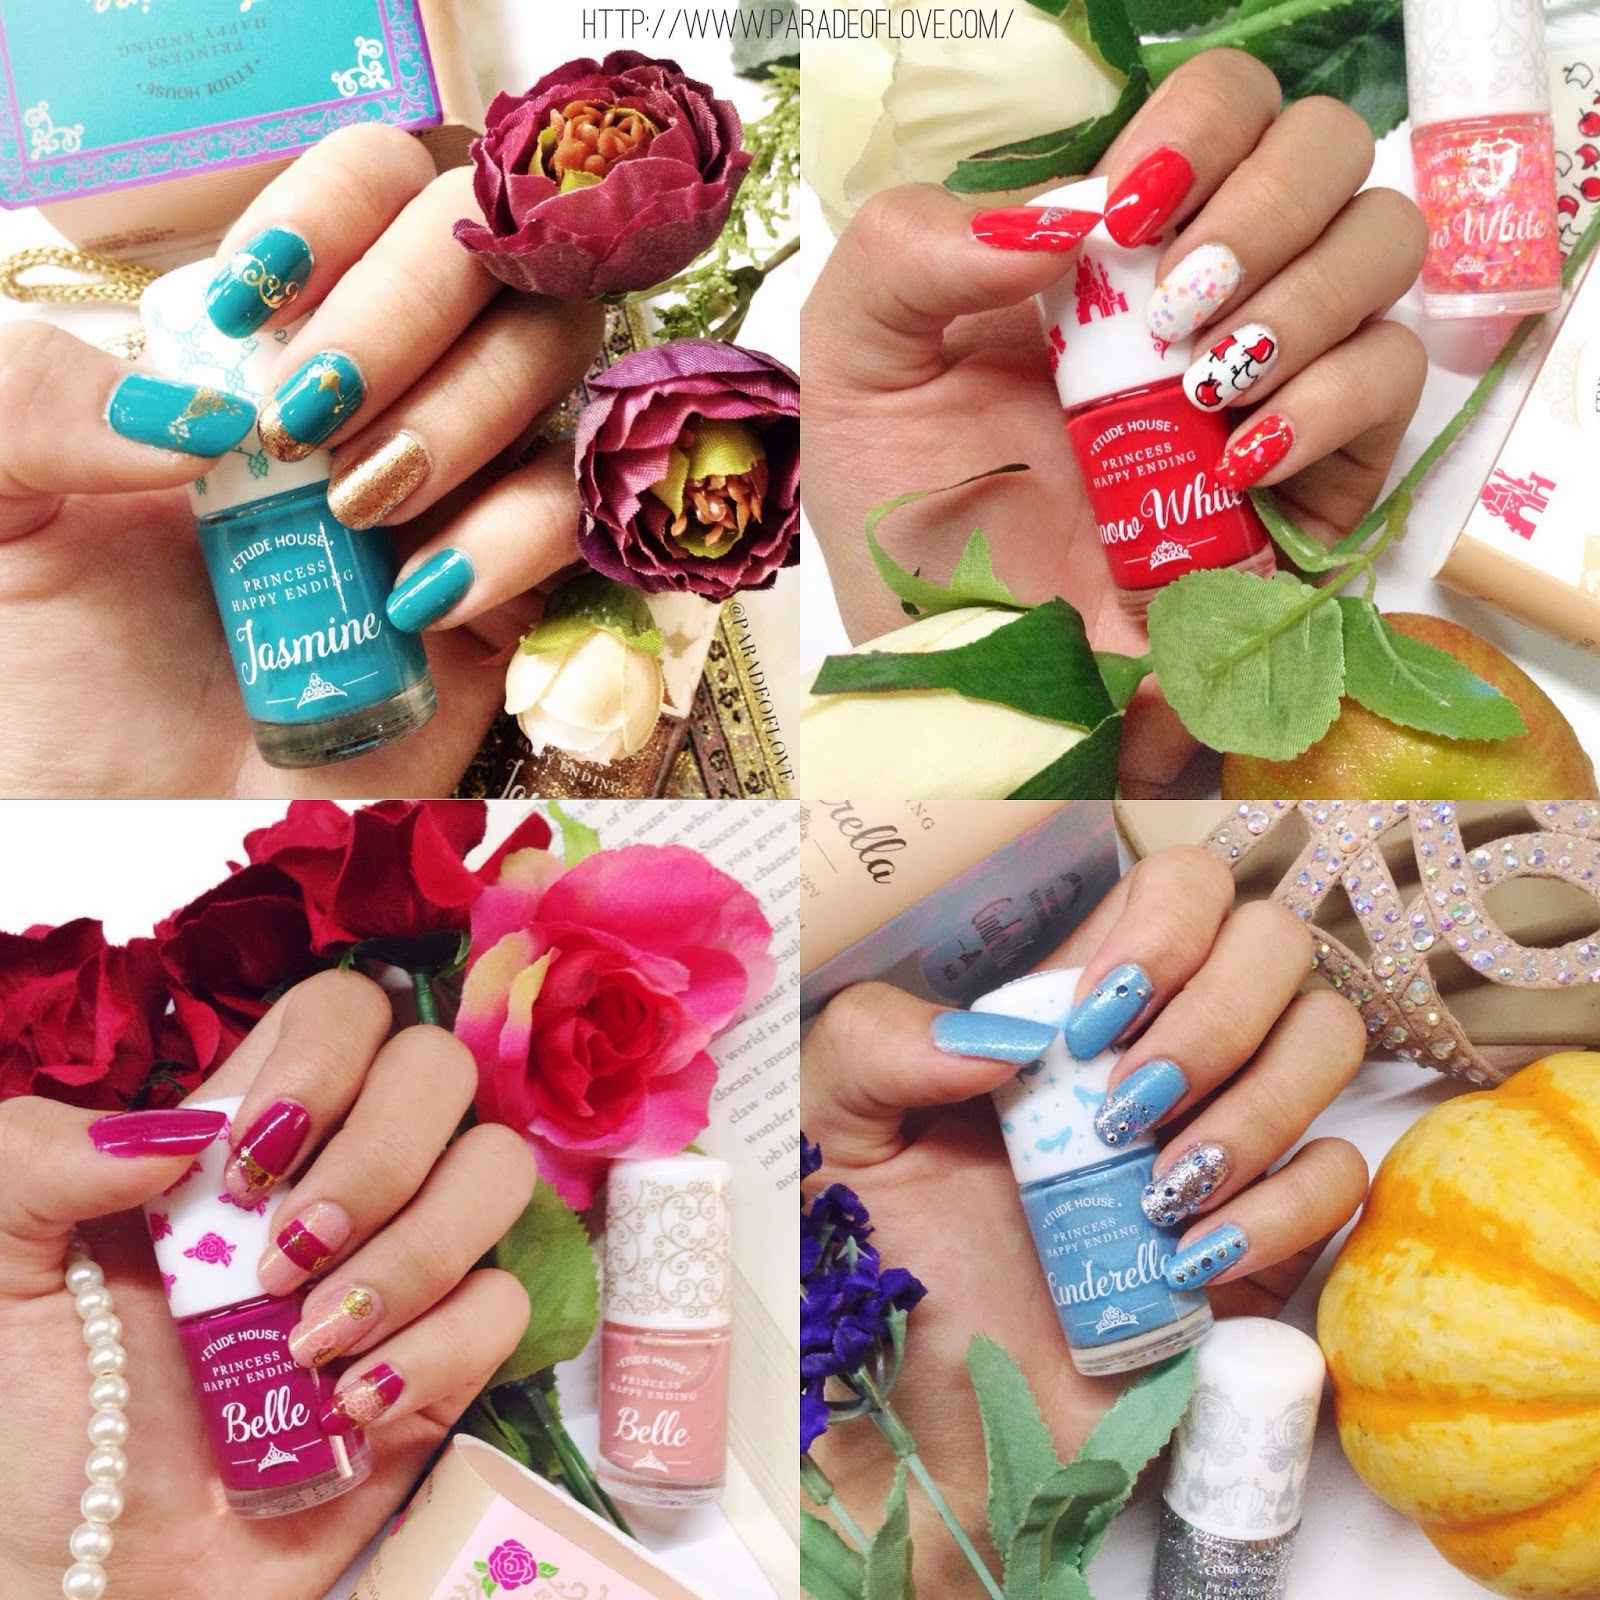 Etude House Princess Happy Ending Nail Polish Kits: Review ...